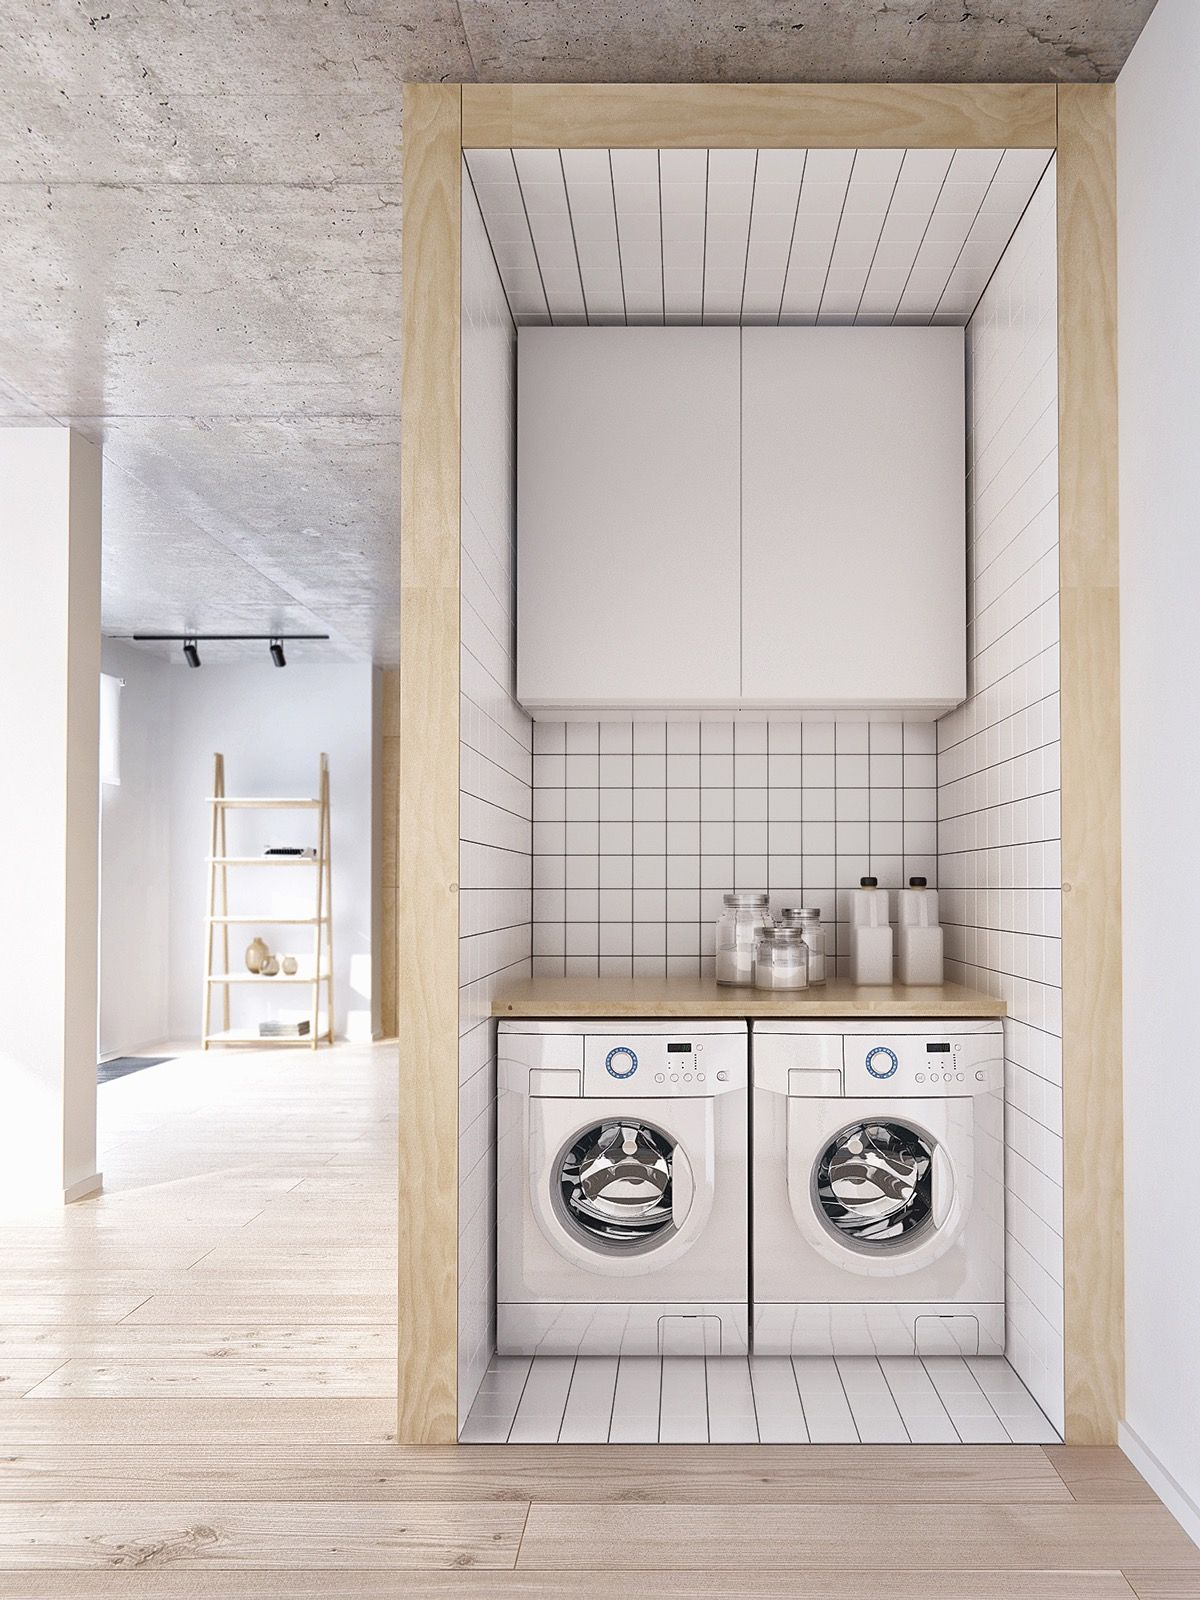 Unique laundry room ideas small space 11 small laundry room cabinet - Interior Small Modern Laundry Roomlayer Ceramic Decorate Stunning Minimalist Apartment For A Family Of Four